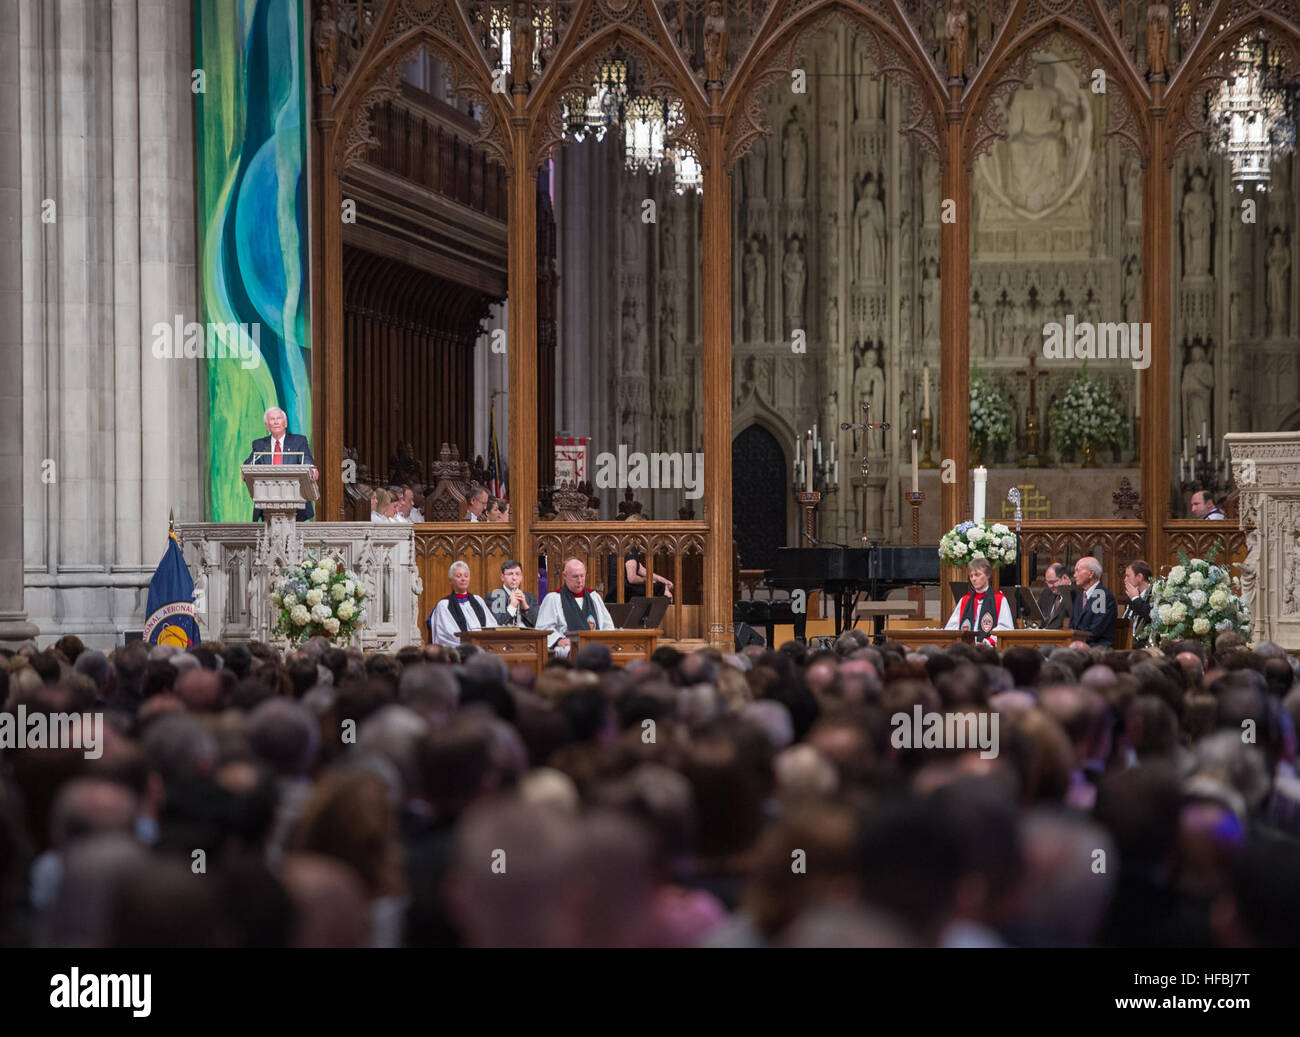 WASHINGTON (Sept. 13, 2012) Apollo 17 mission commander Gene Cernan, the last man to walk on the moon, speaks during - Stock Image